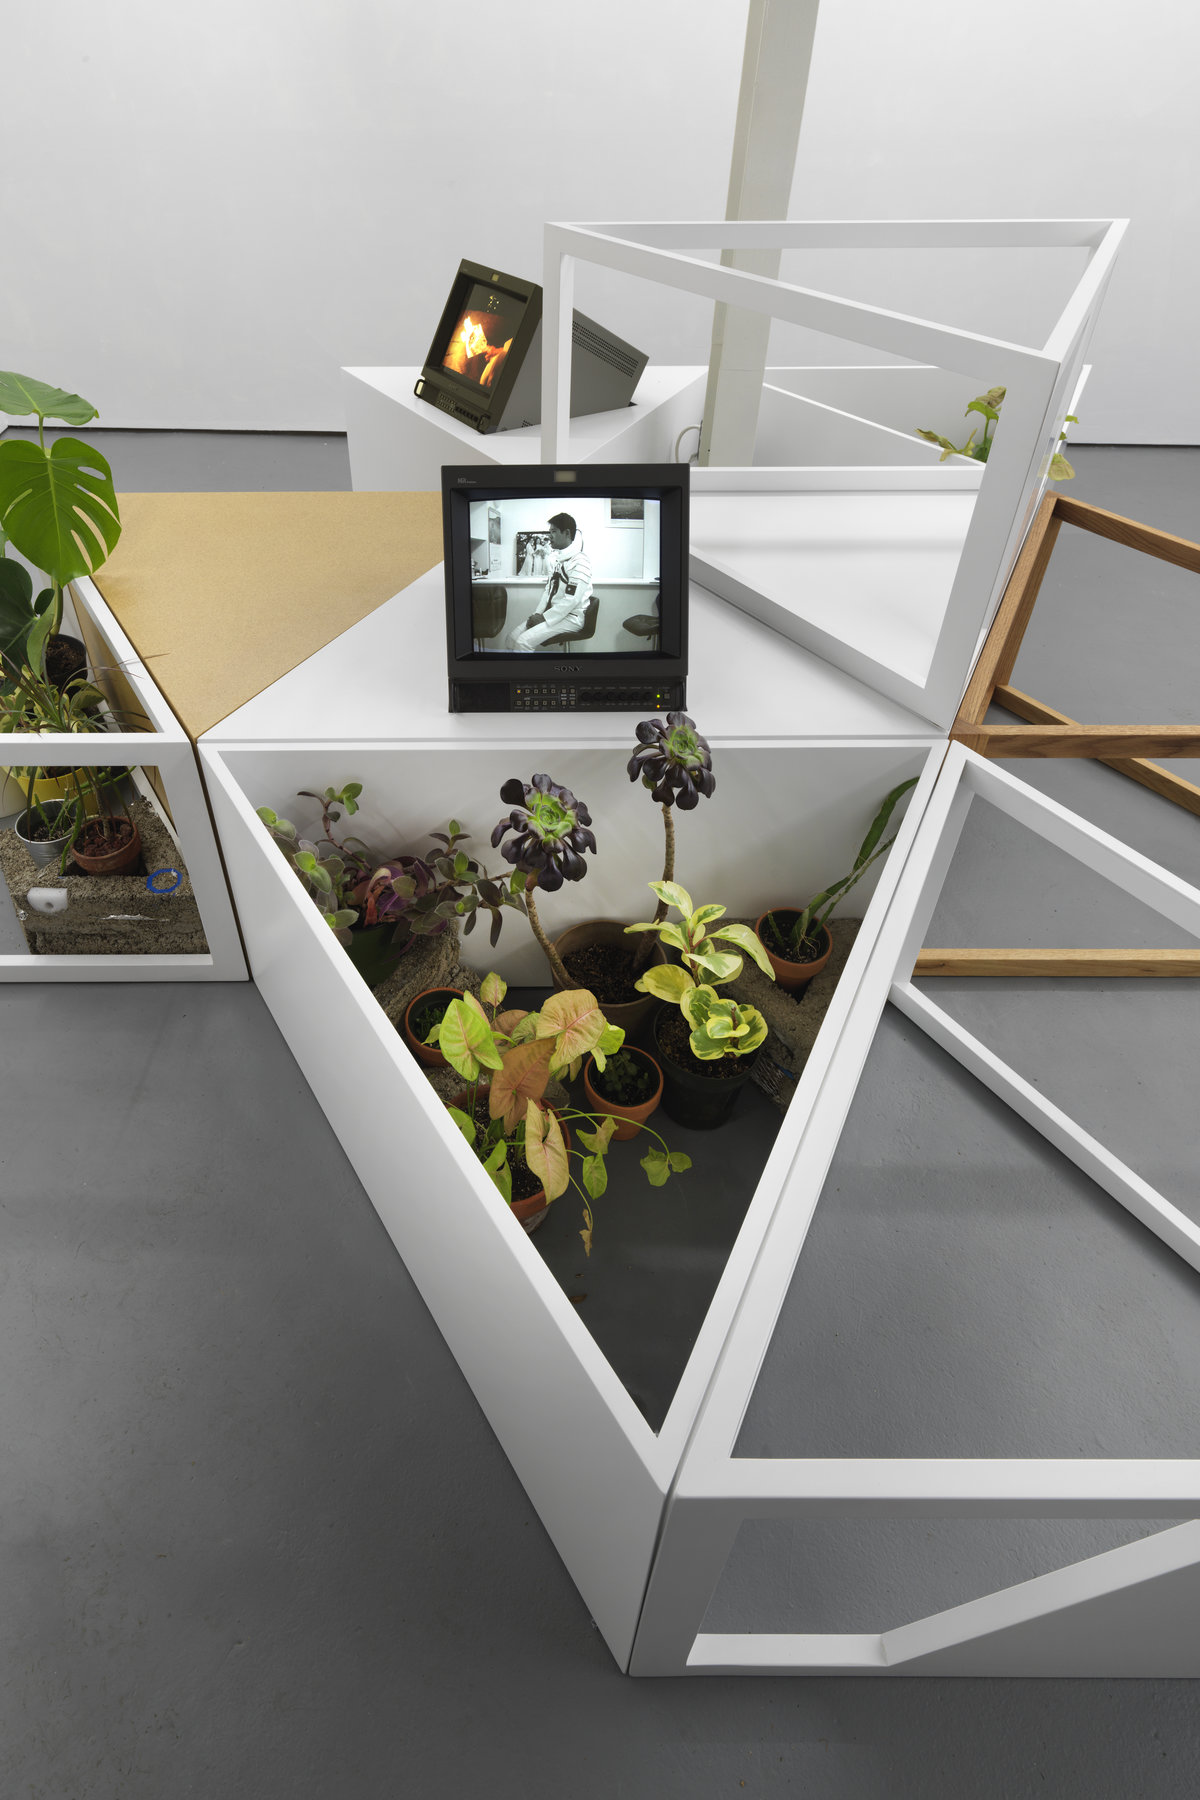 Image: Several small plants in a large triangular planter with a TV screen overhead. Photo by Reuben Westmaas.